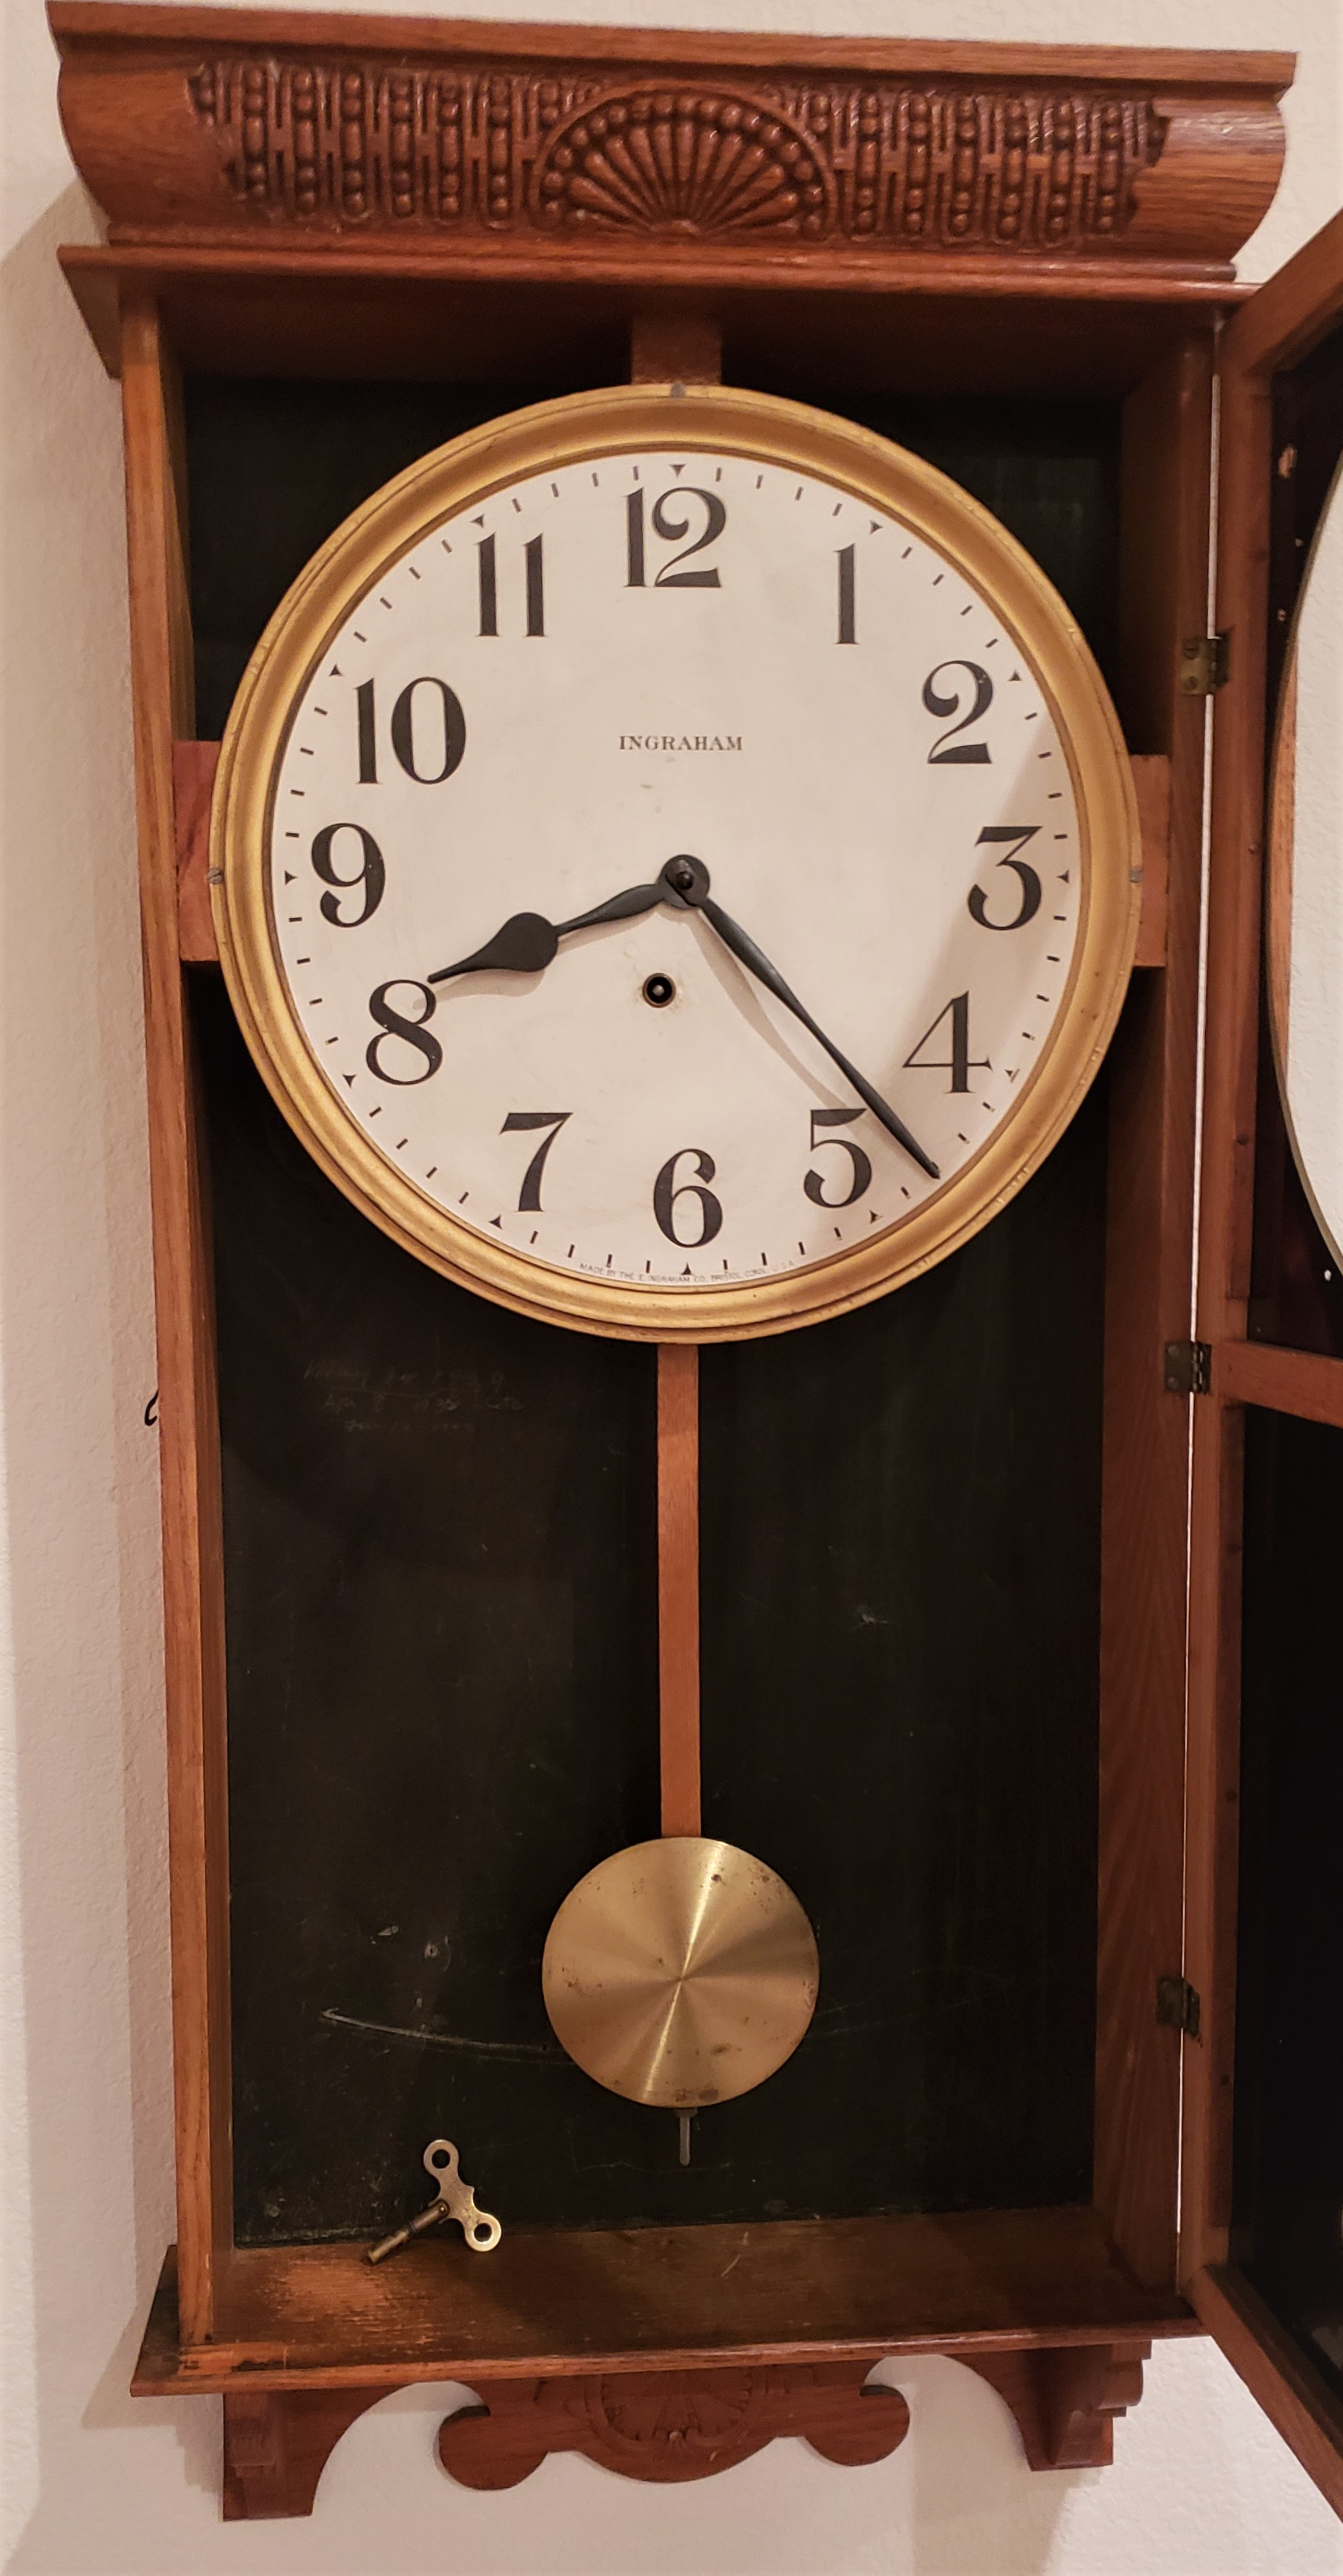 Calumet Advertising Clock from 1910 – $500 – SOLD   Timely Antiques